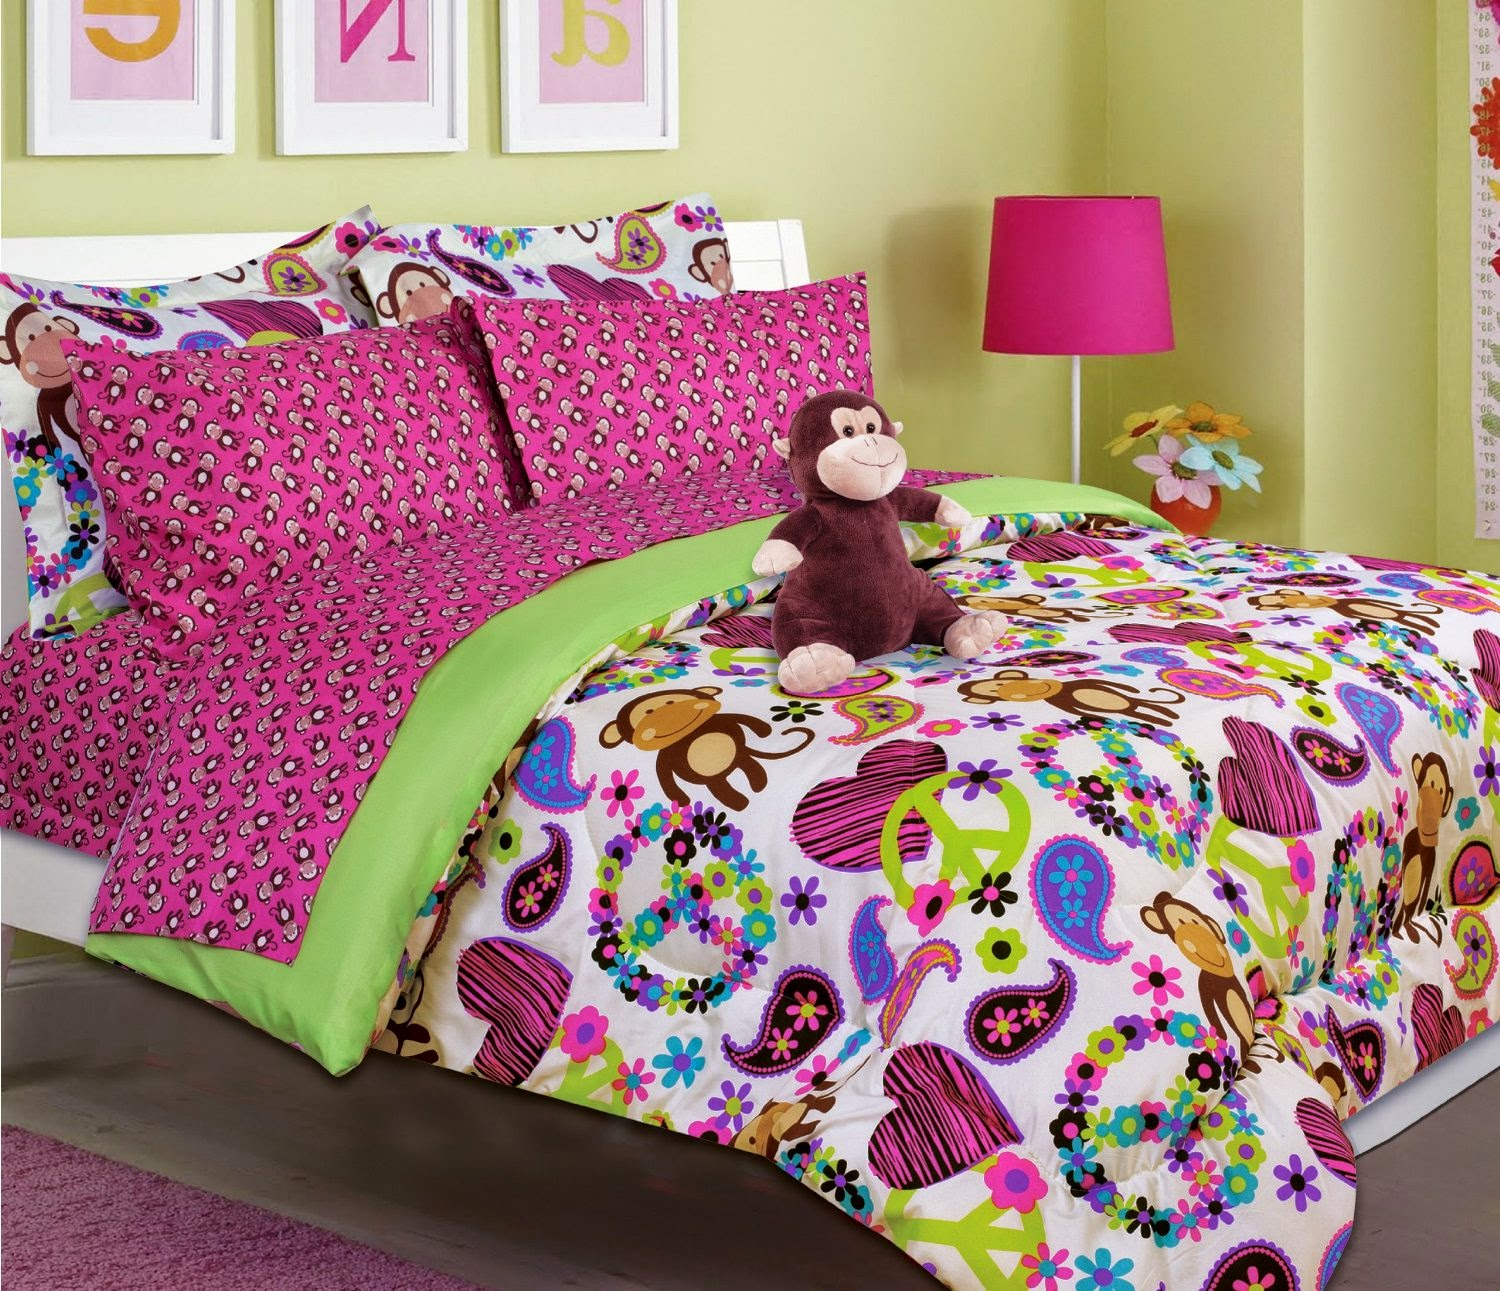 Http Themed Bedroom Decor Ideas Blogspot Com 2014 06 Monkey Themed Bedding Set For Girls And Html